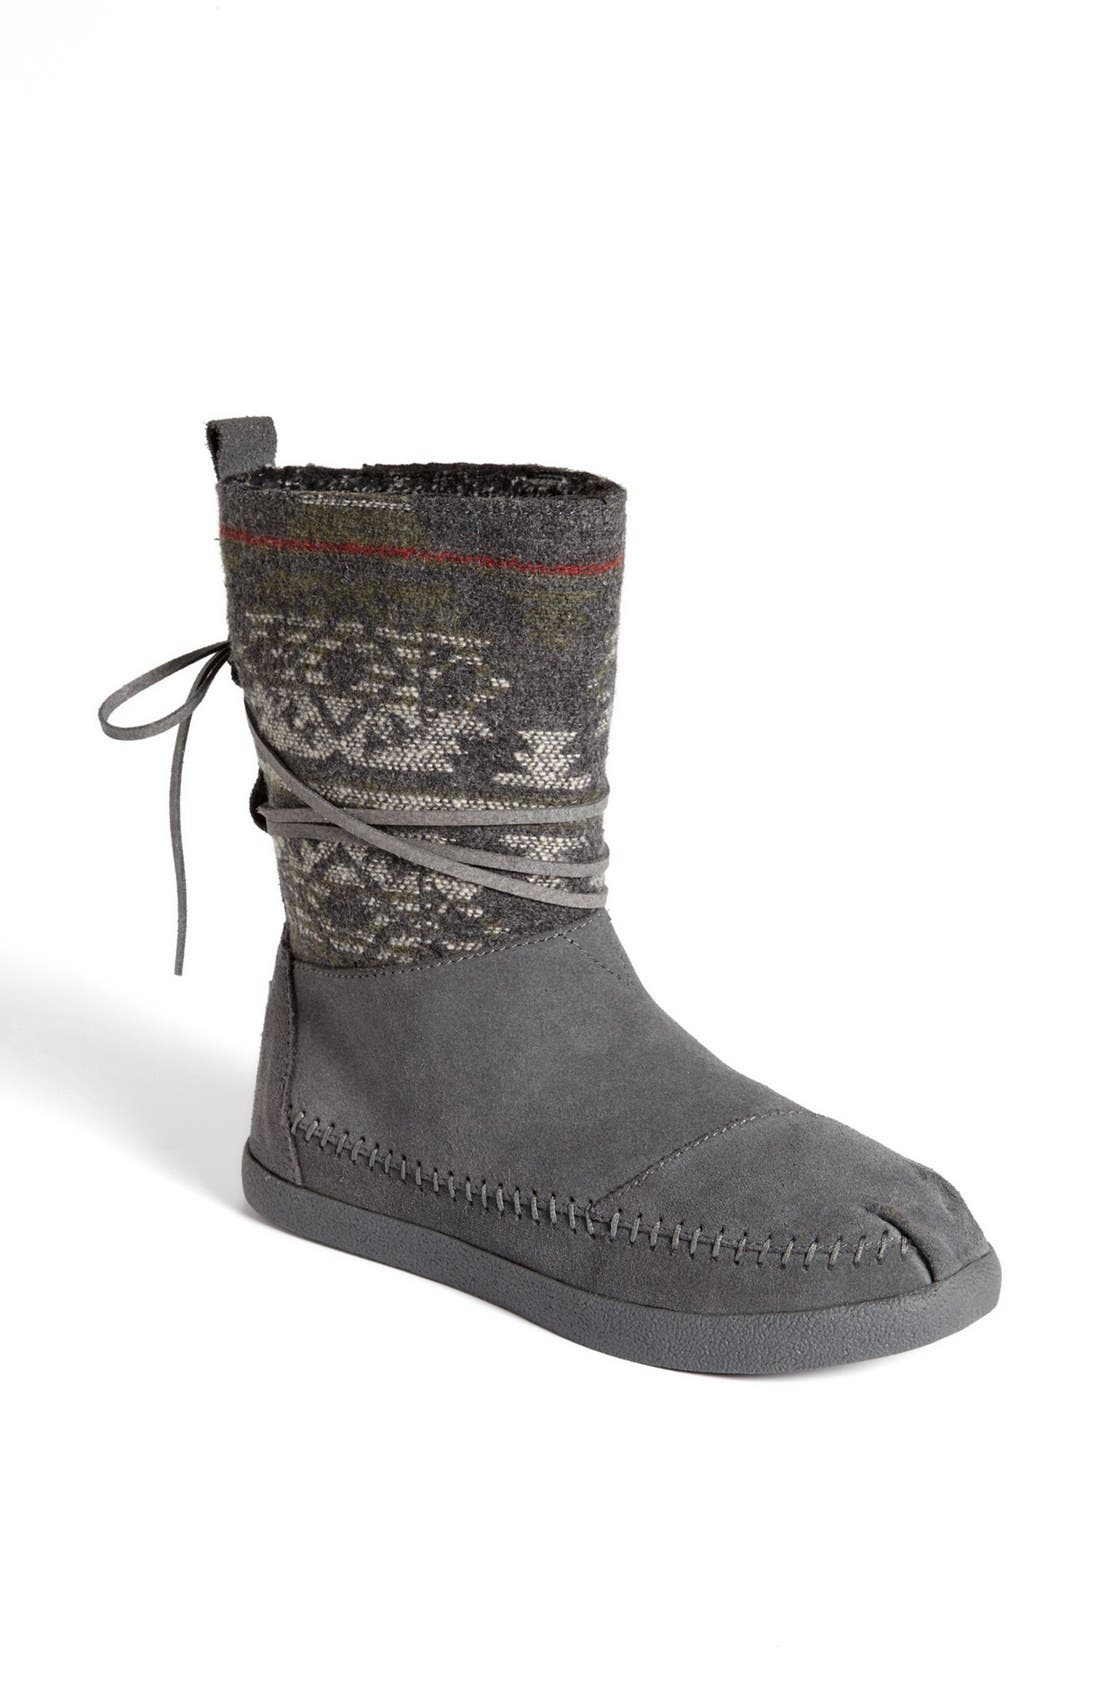 Alternate Image 1 Selected - TOMS 'Nepal - Jacquard' Boot (Women)